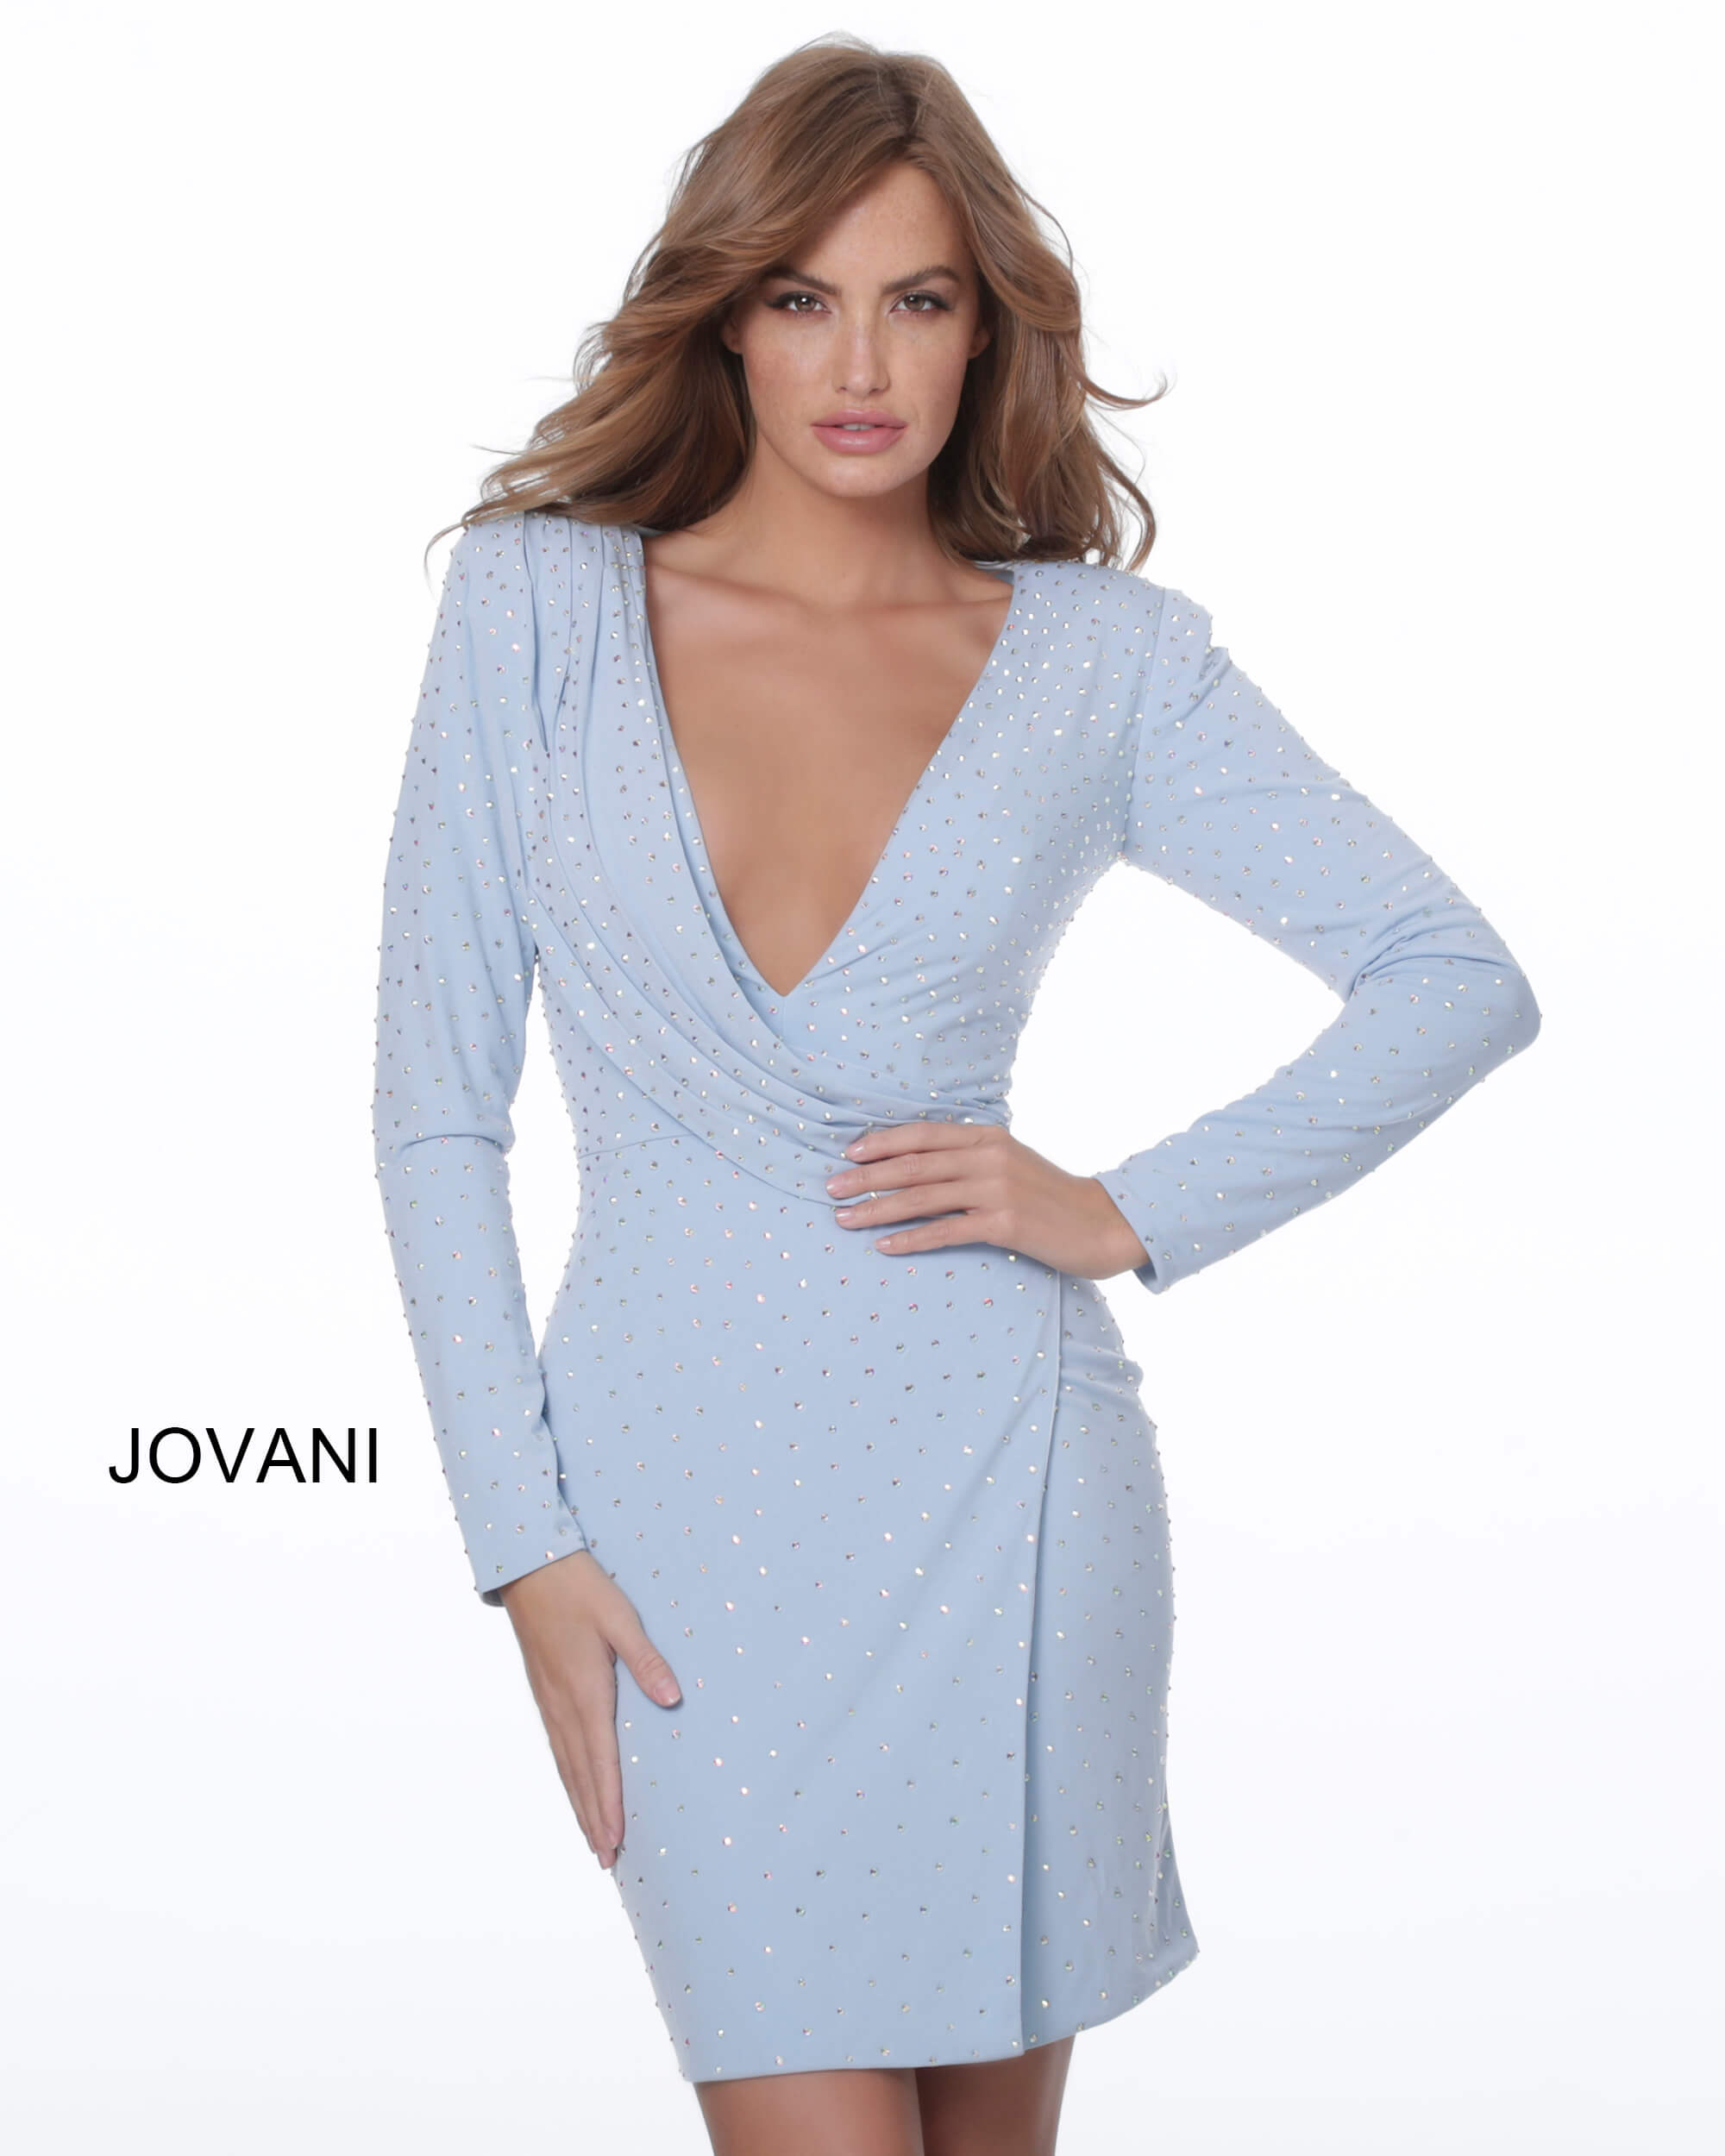 Jovani 04015 Light Blue Long Sleeve Draped Cocktail Dress on mobile 0